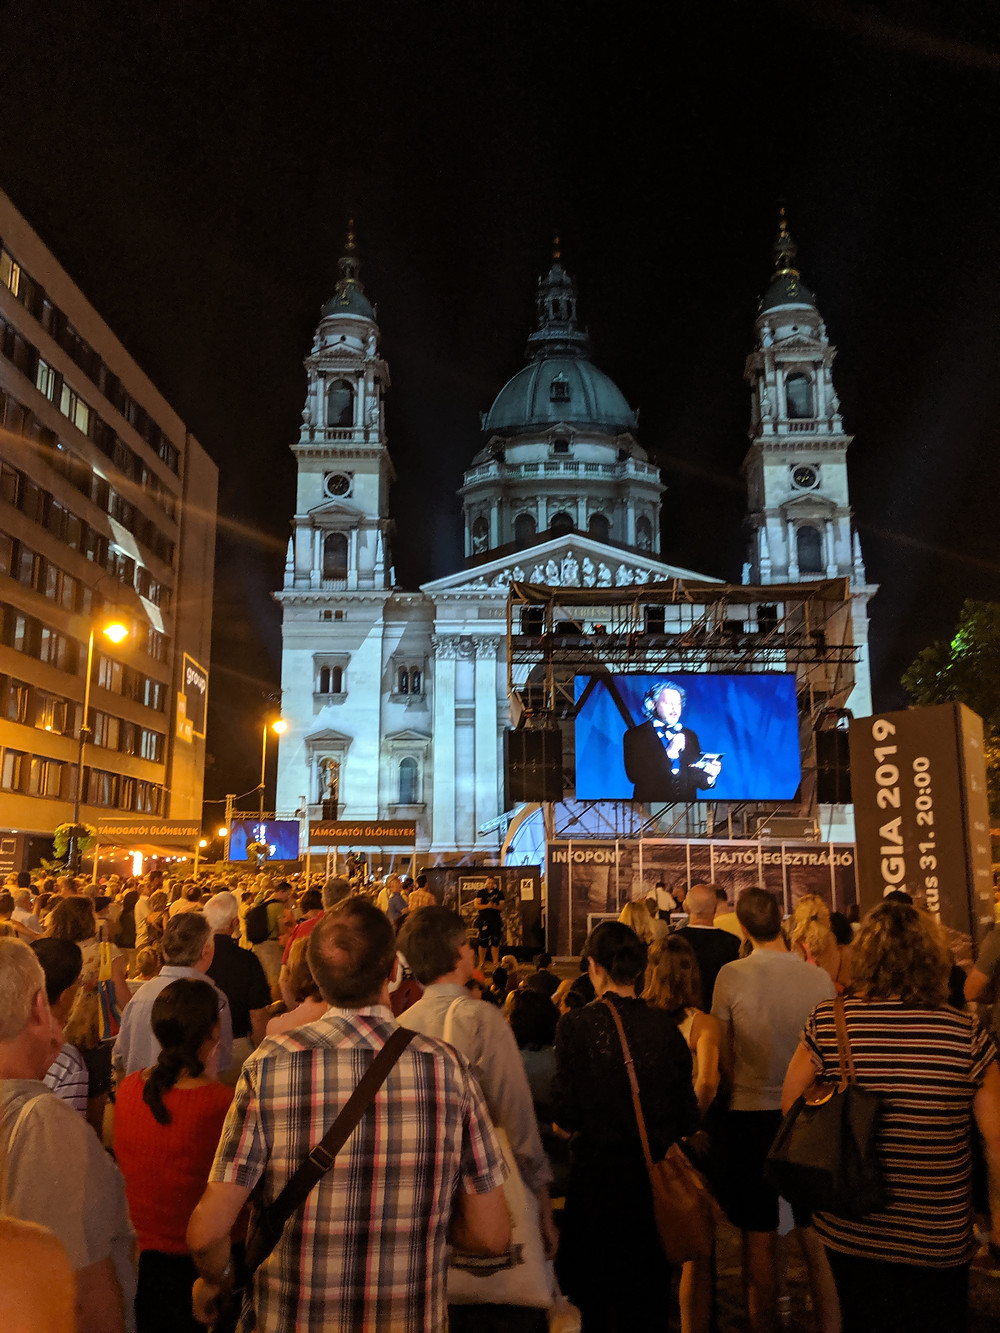 St. Stephen's Basilica at night with concert in the square.